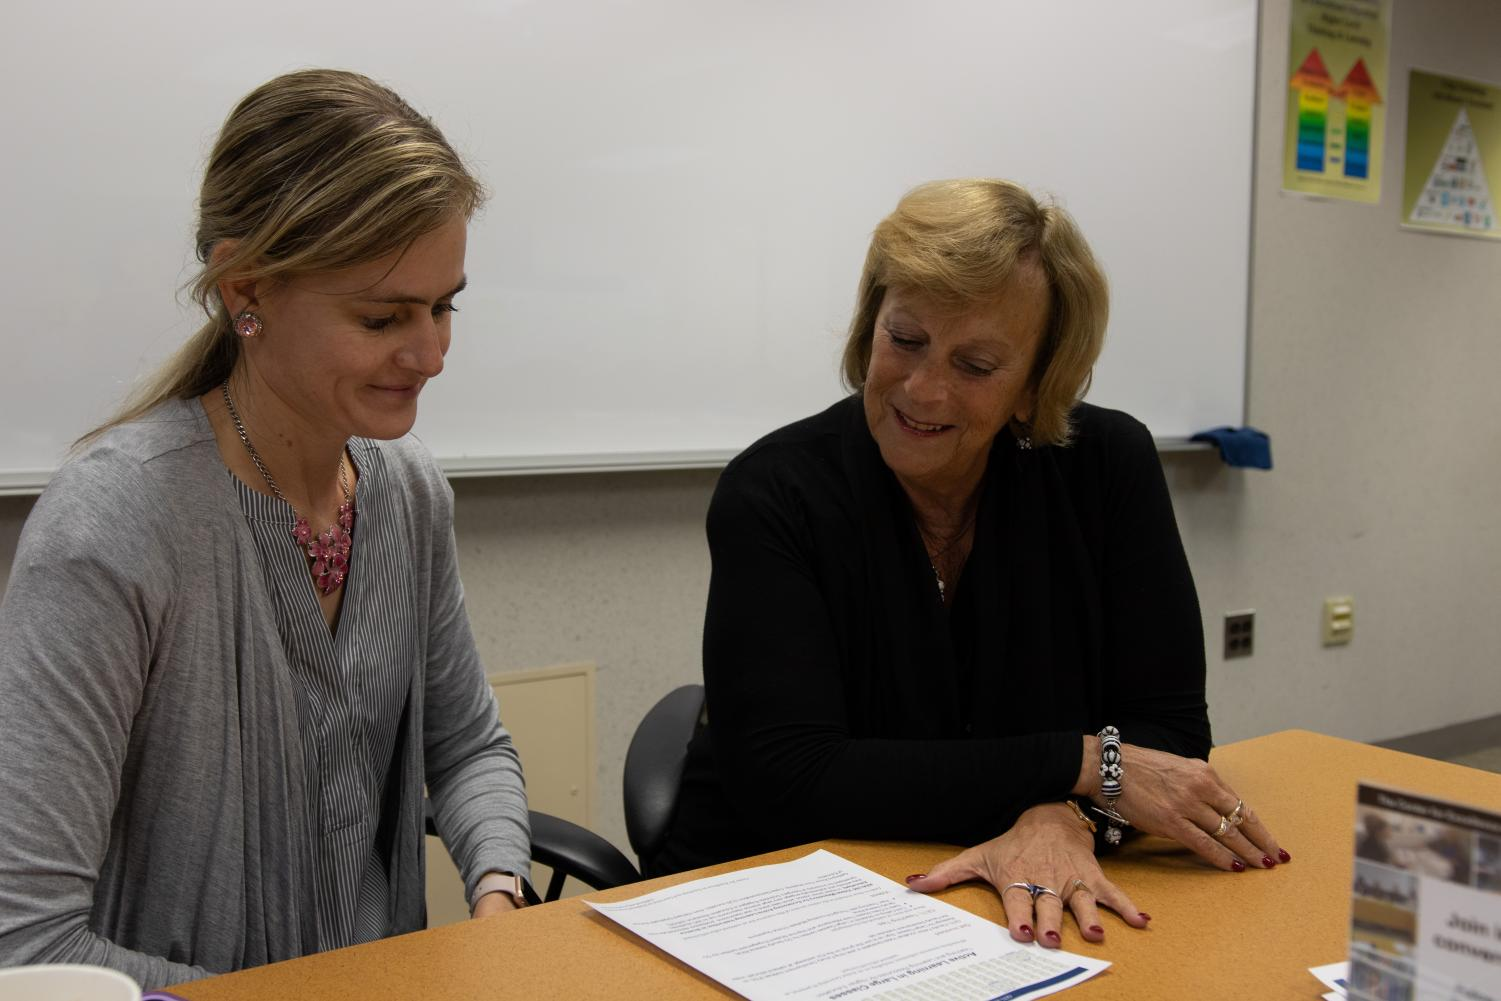 CETL Director Dr. Judith Ableser, right, works with Dr. Kathy Schaefer at a faculty meeting.